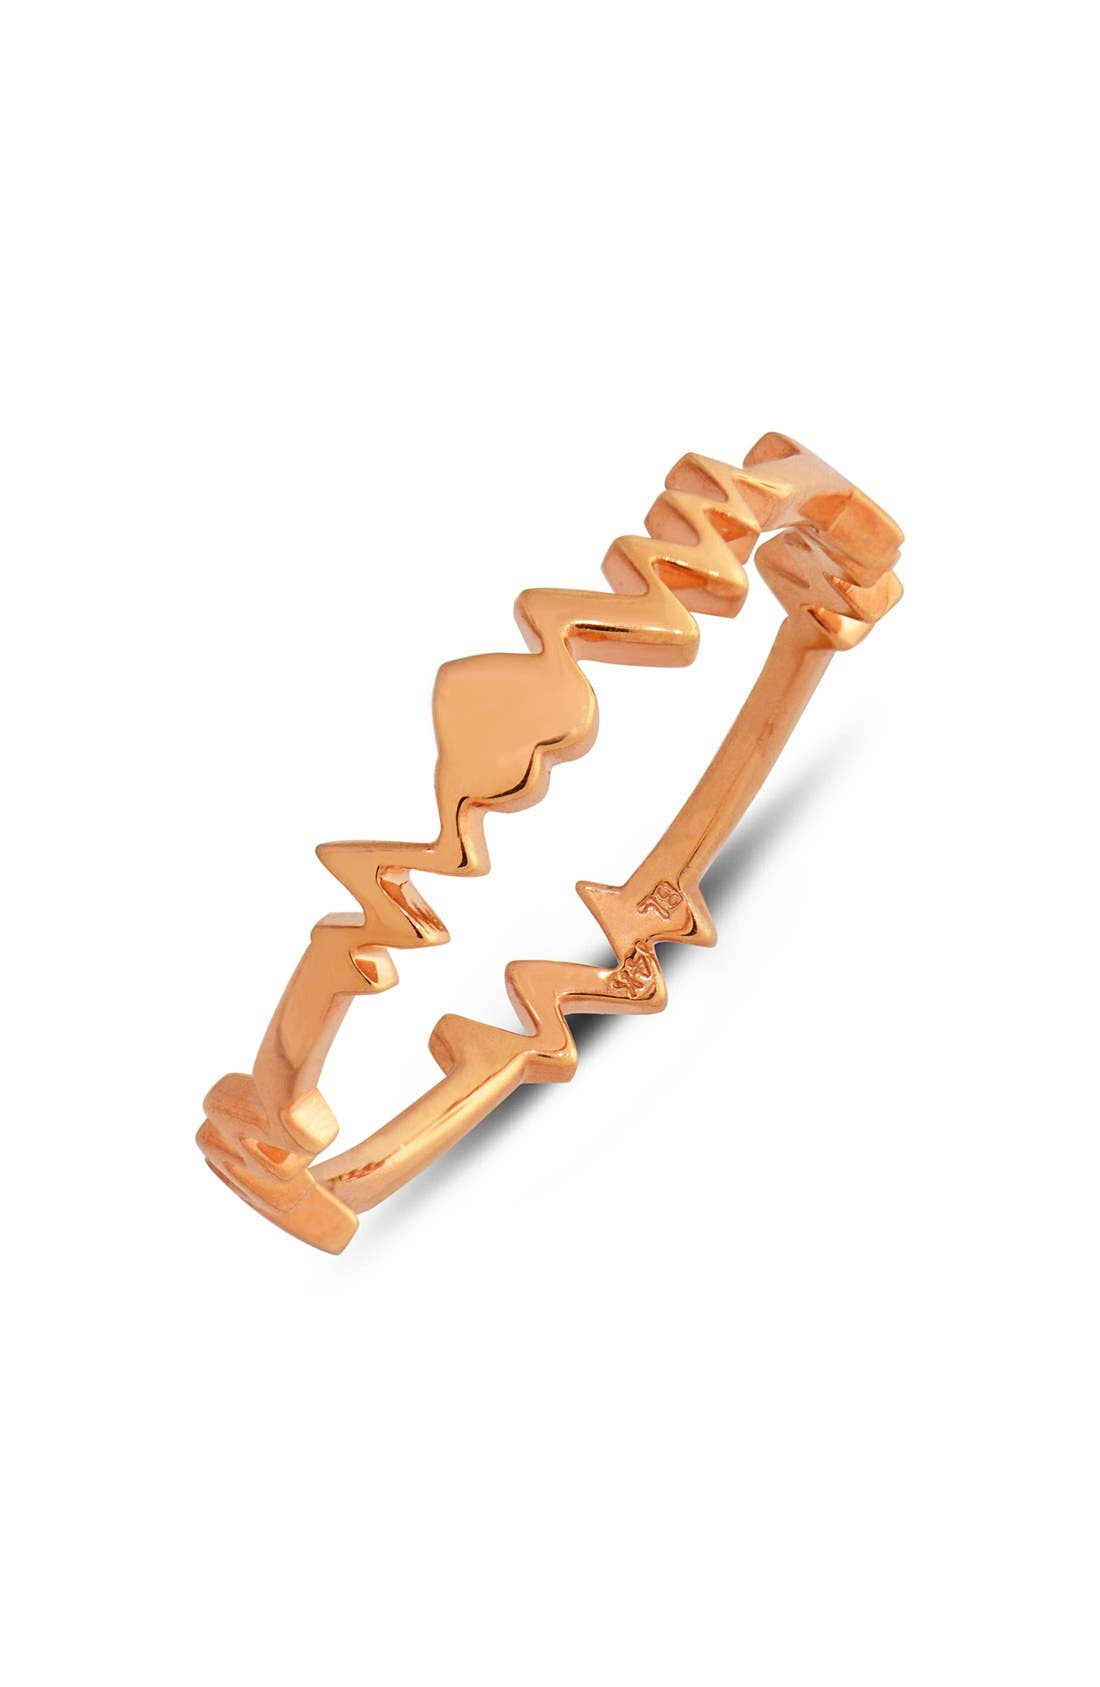 Alternate Image 1 Selected - Bony Levy 'Heartbeat' 14k Gold Band Ring (Limited Edition) (Nordstrom Exclusive)